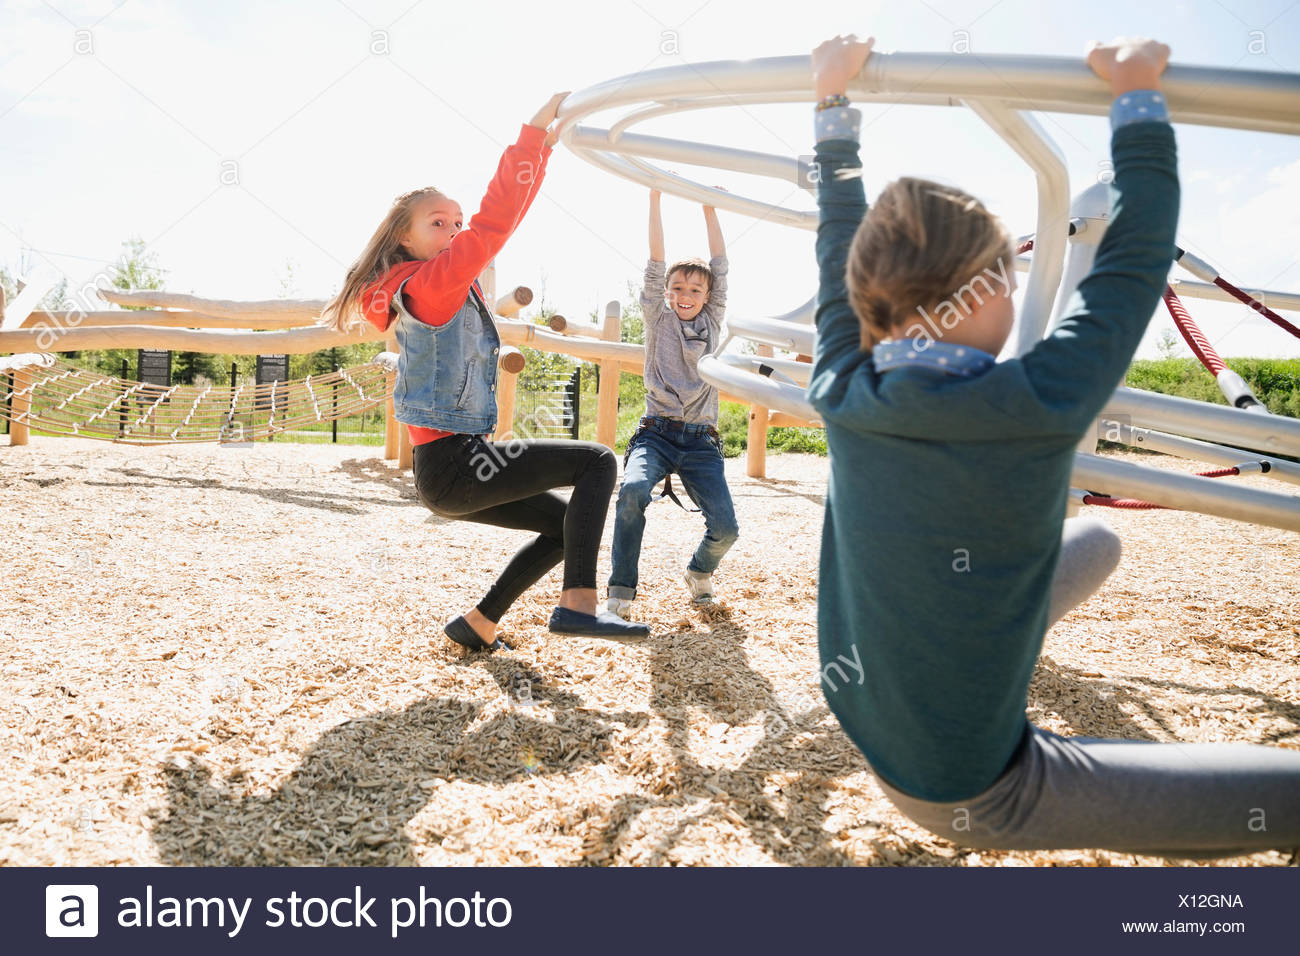 Kids hanging from spinning bar at sunny playground - Stock Image